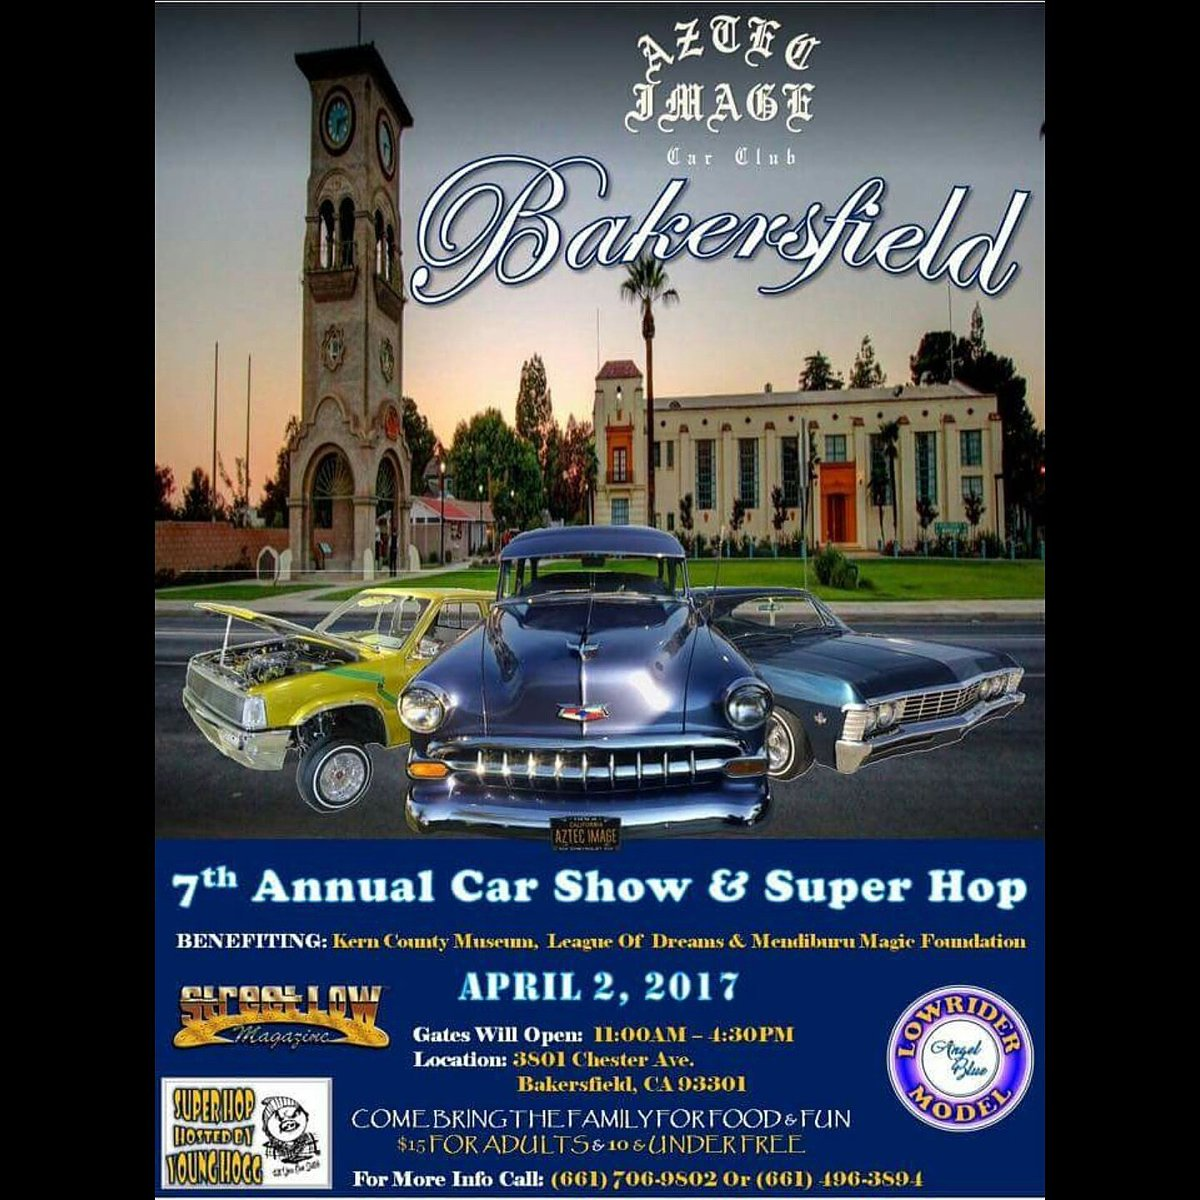 Pinches Lowriders On Twitter IShapeMyWorld With Lowriders - Bakersfield car show